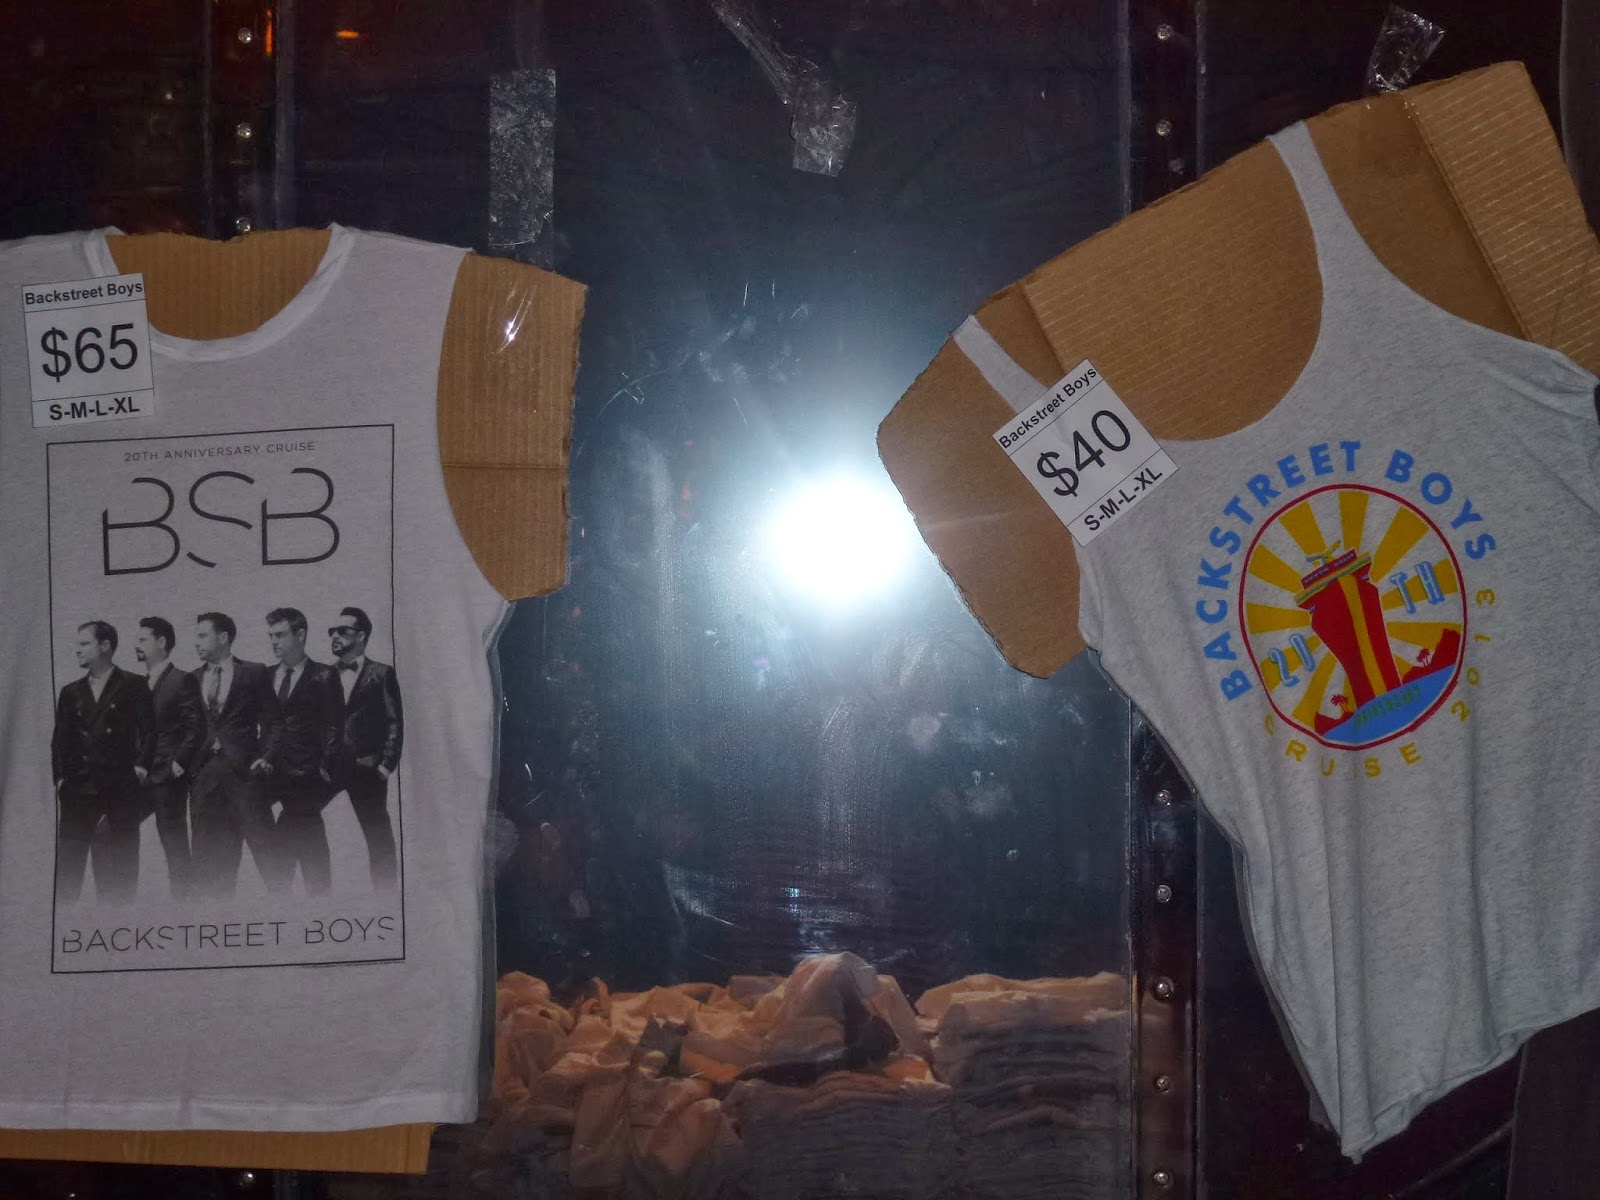 Backstreet Boy Cruise 2013 tank top